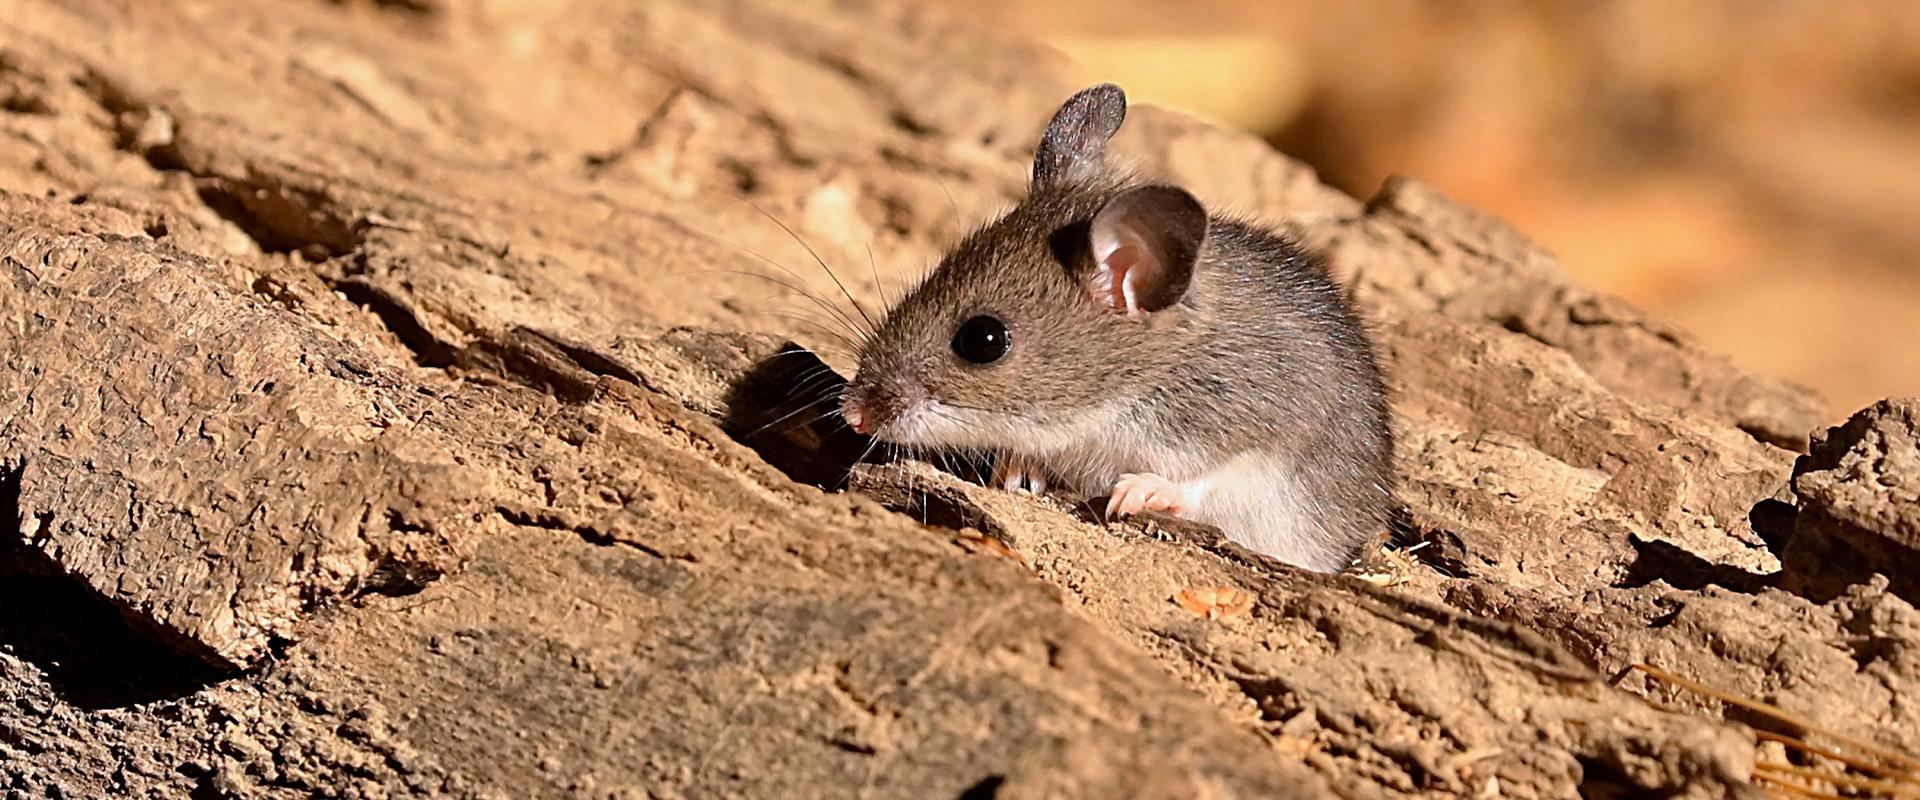 a mouse on wood